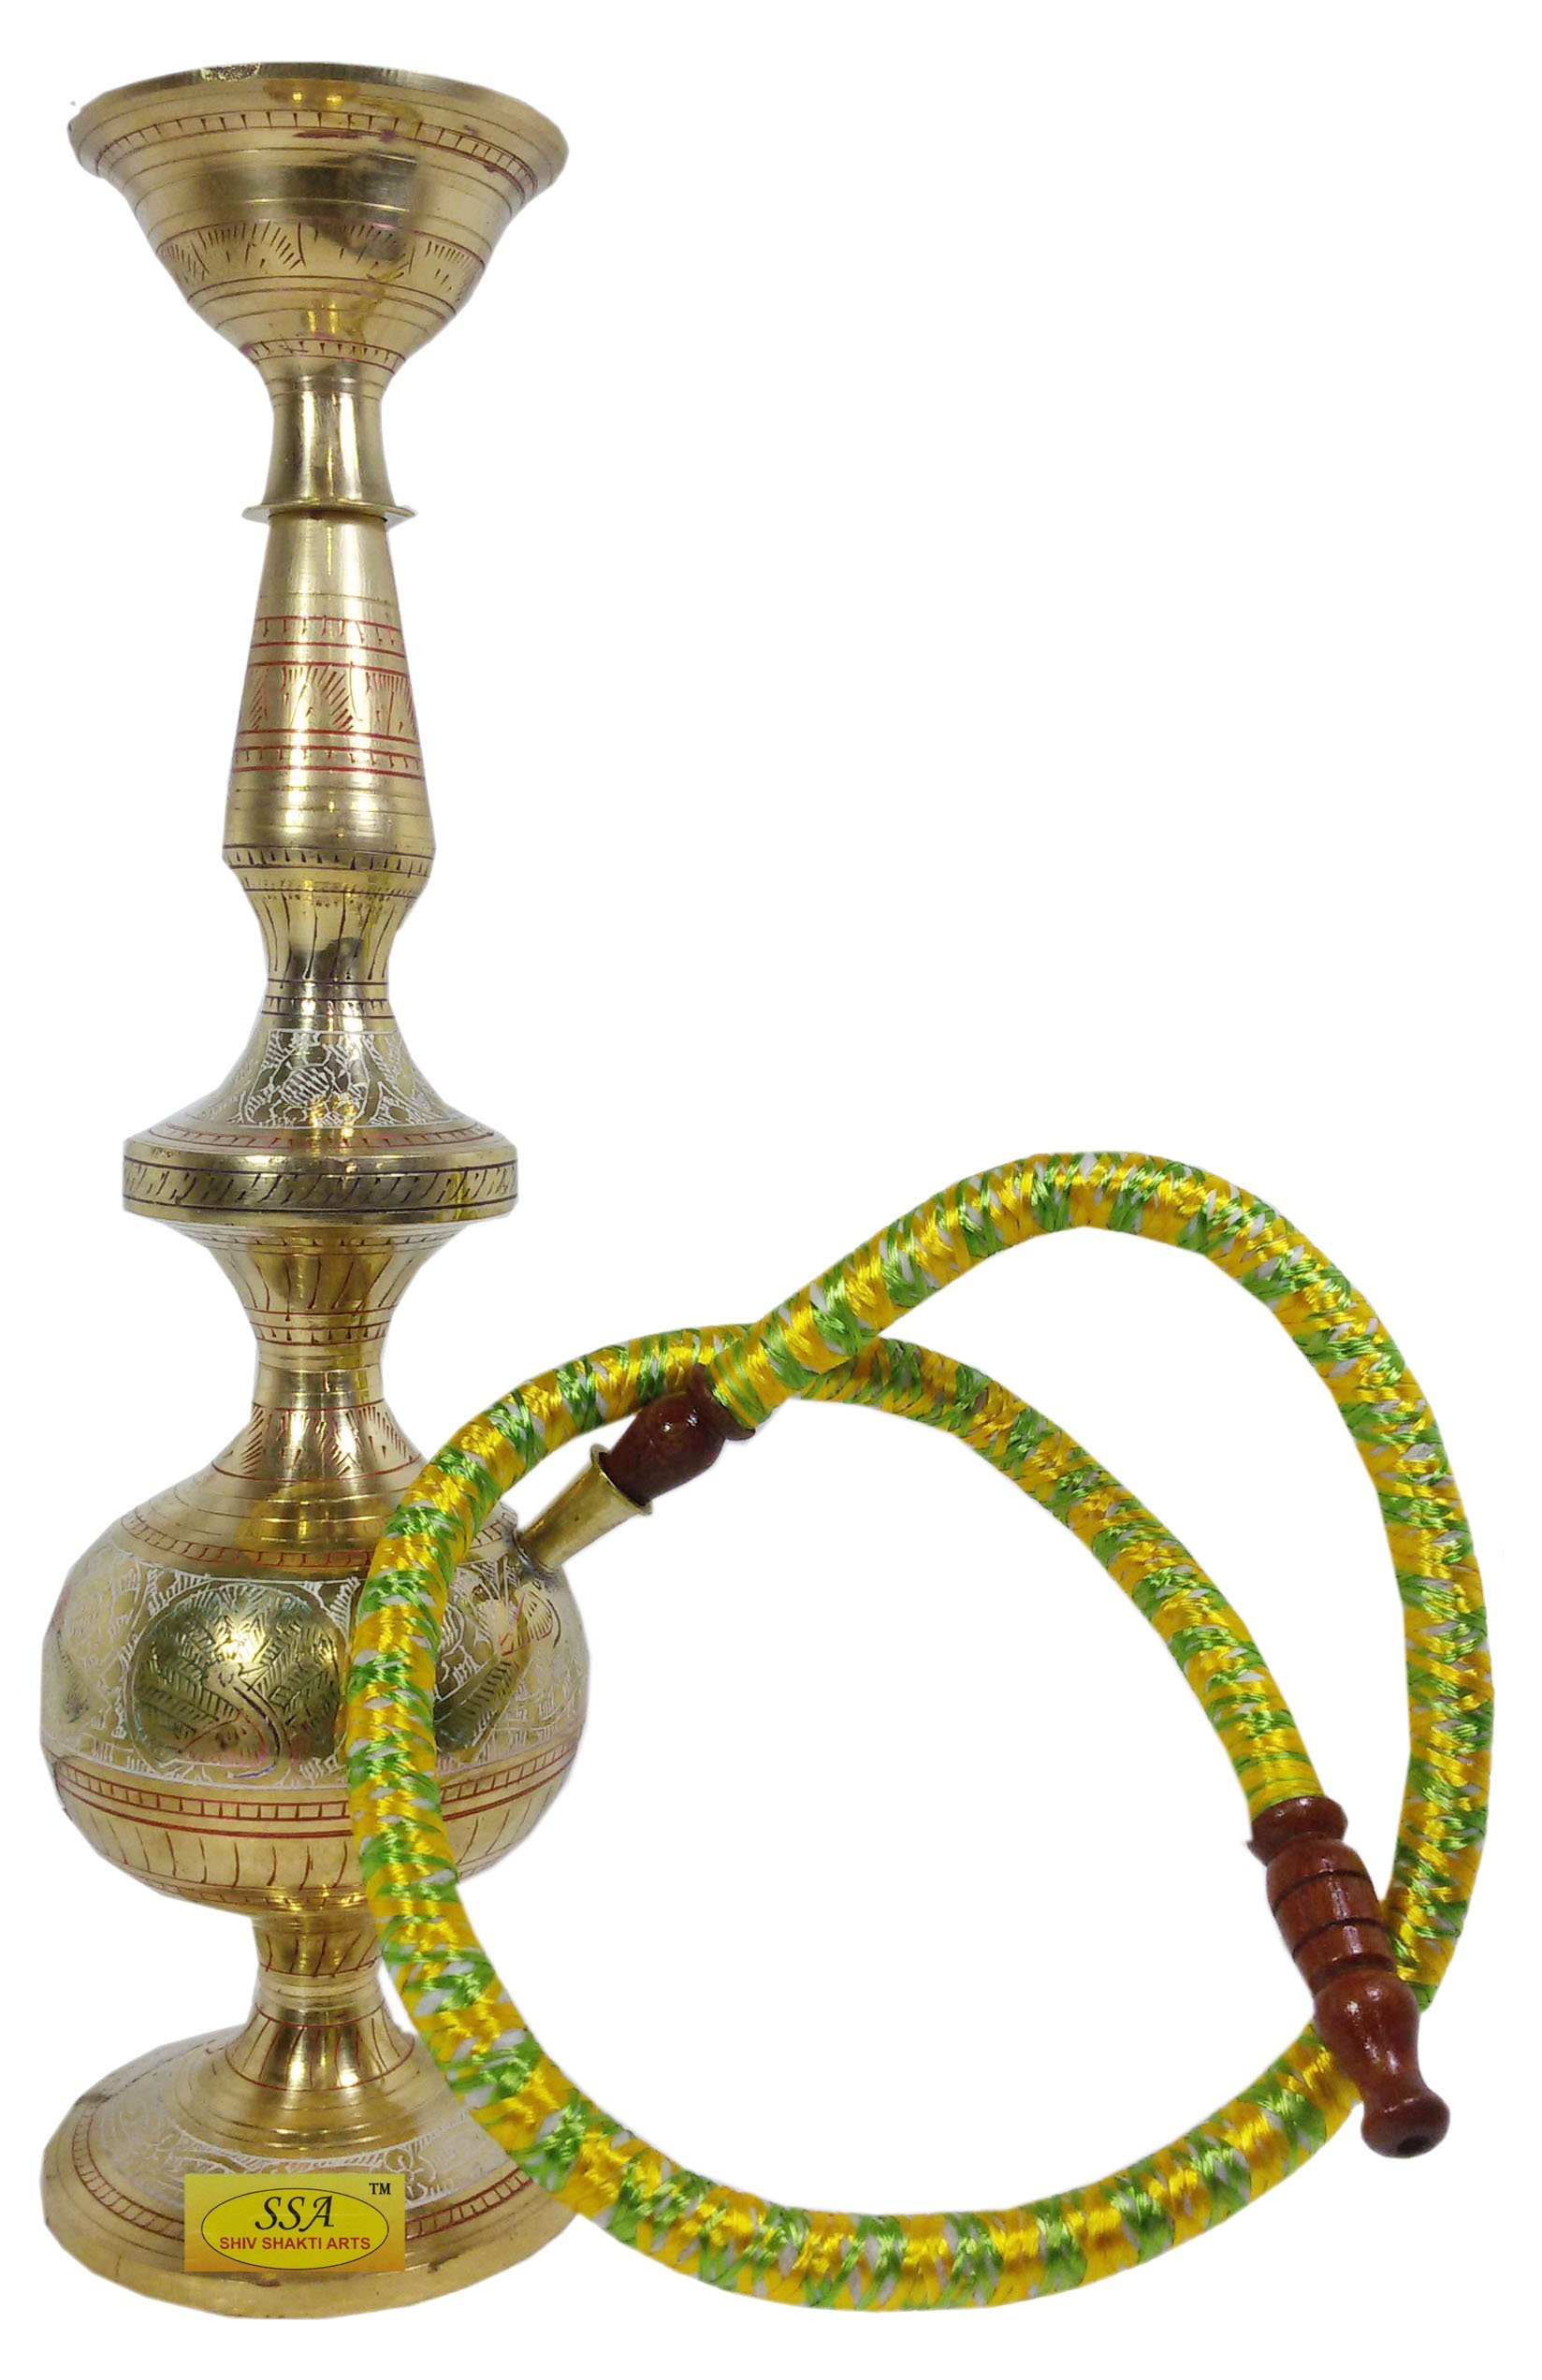 SHIV SHAKTI ARTS Handmade Pure Brass Leaf And Embossed Designed Hookah Height 14 Inch Or 36 Cm